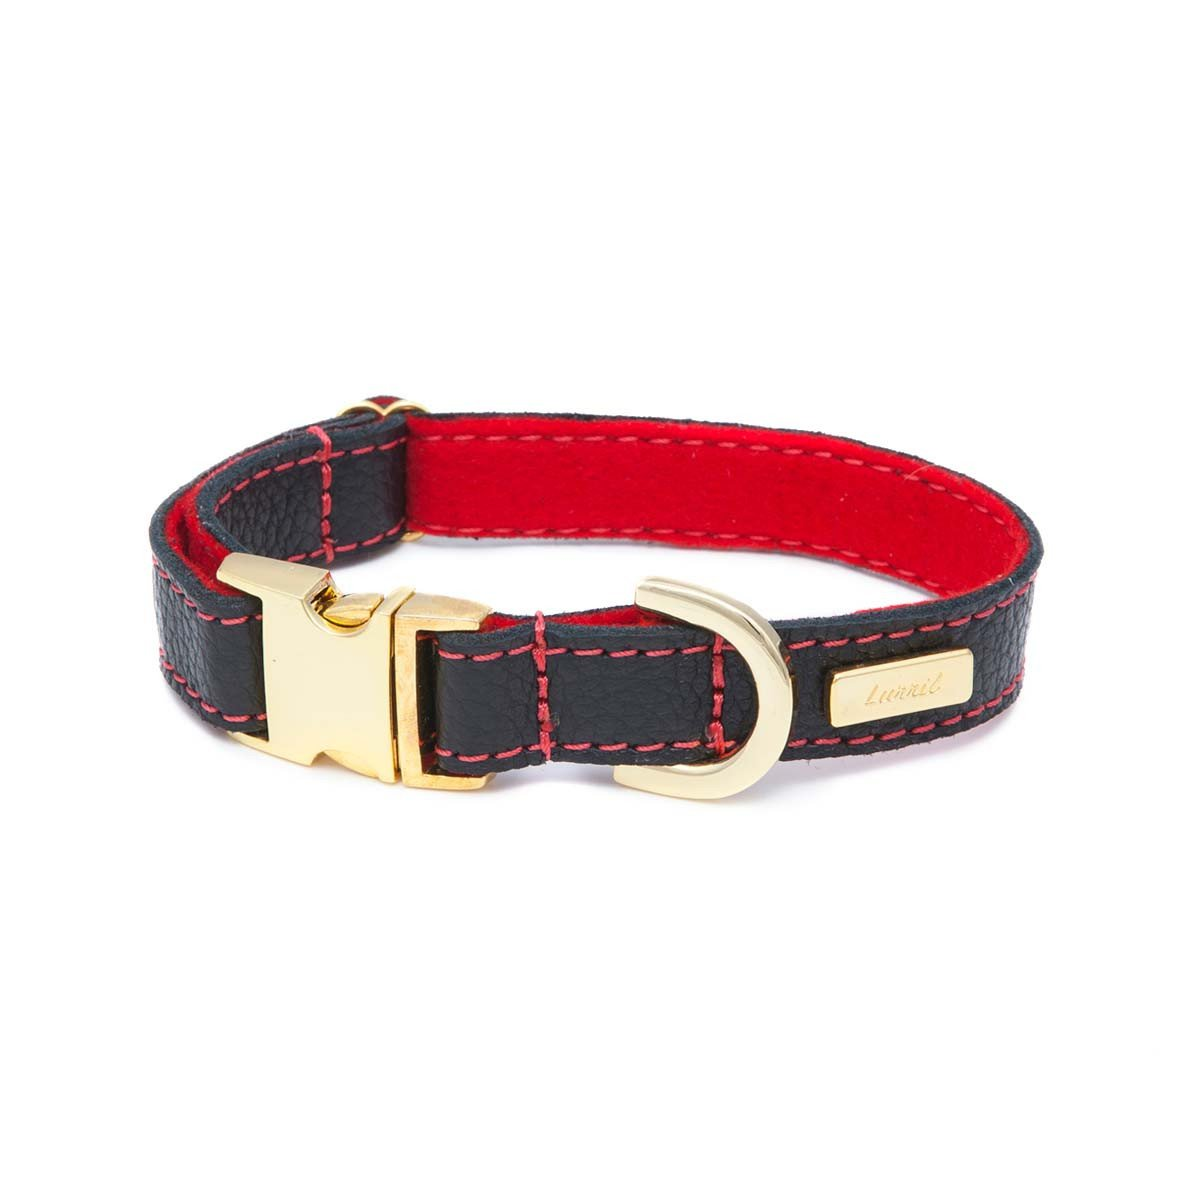 Black Leather Dog Collar for your German Shepherd - Durable & Soft Leather and Soft Wool Lining